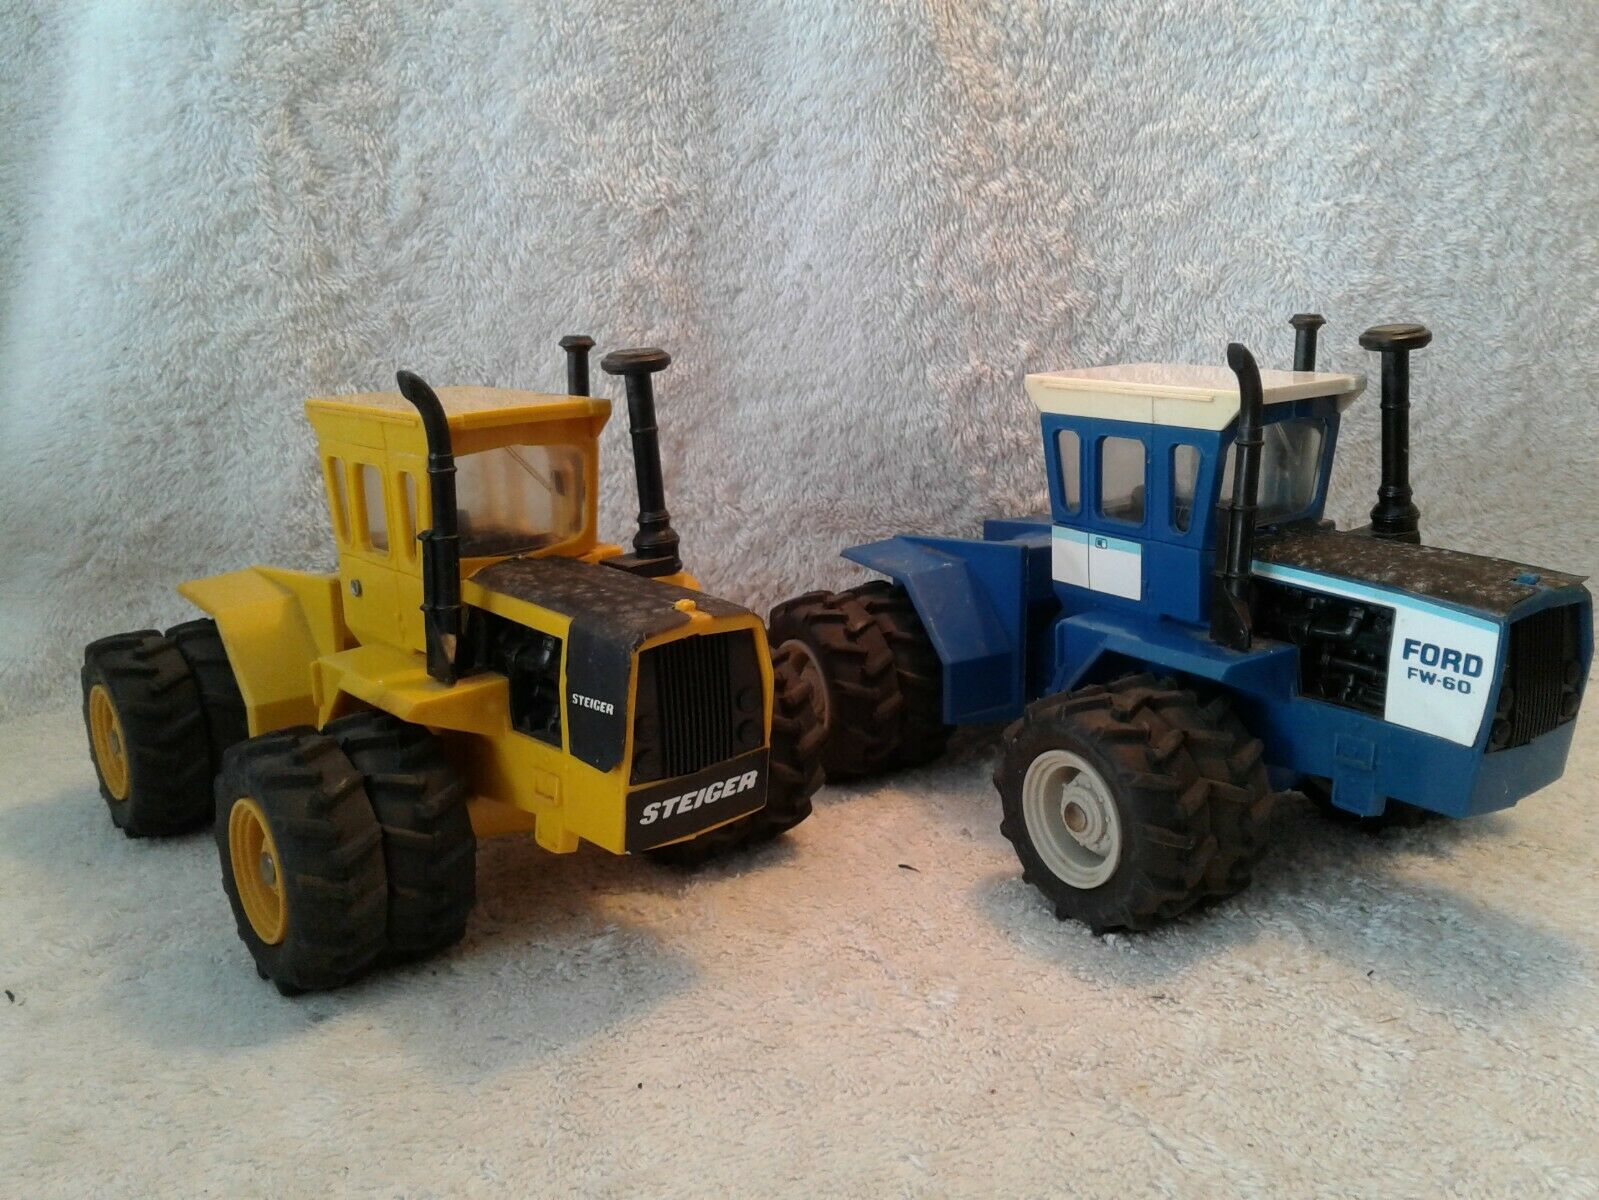 2 Plastic 1 32 Ertl 4WD Tractors  Industrial Yellow Steiger Panther & Ford FW 60